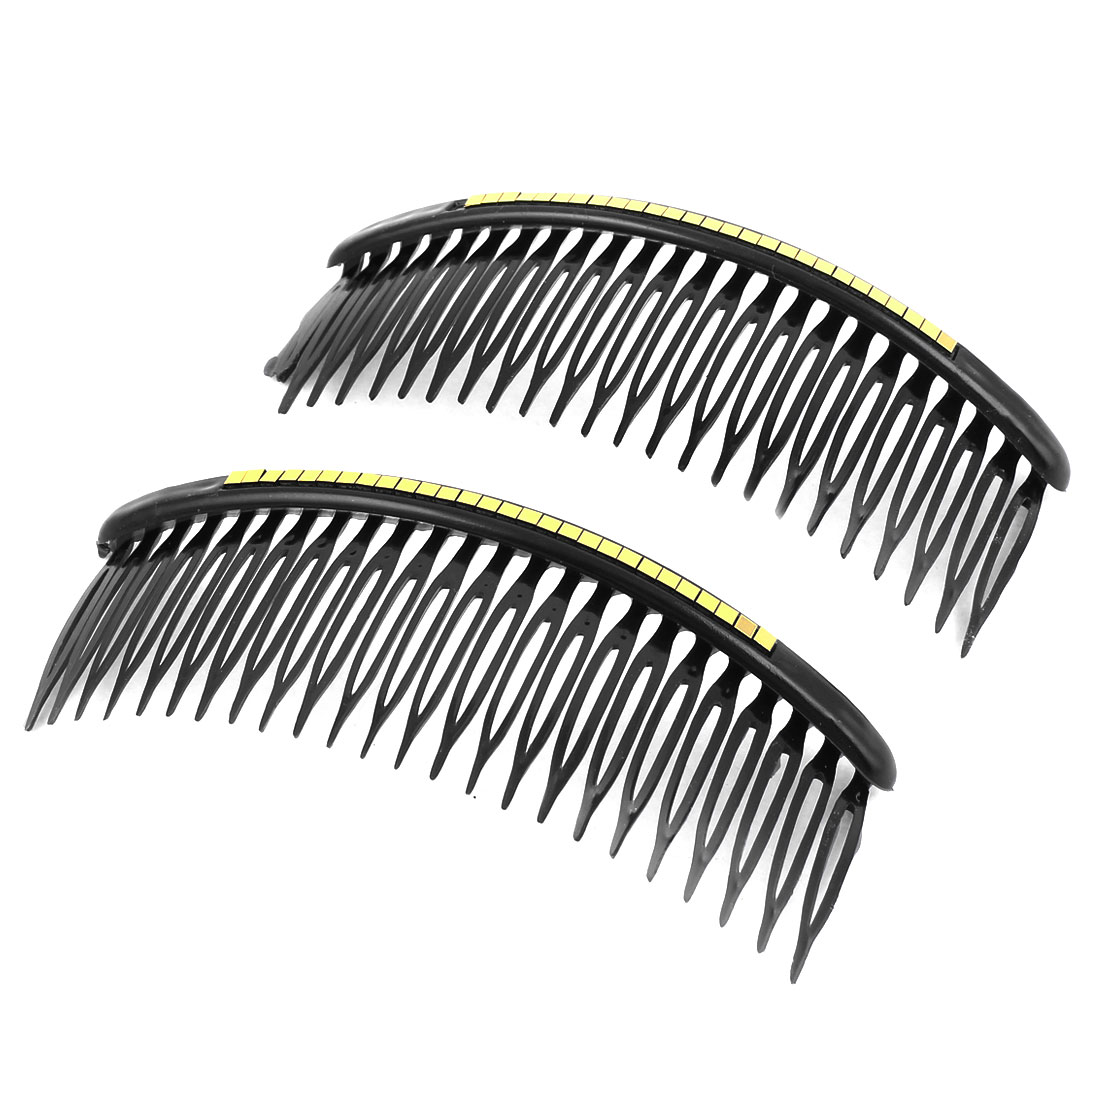 2 Pcs Black Glittery Gold Tone Square Sheet Decor Plastic Comb Hair Clip for Lady